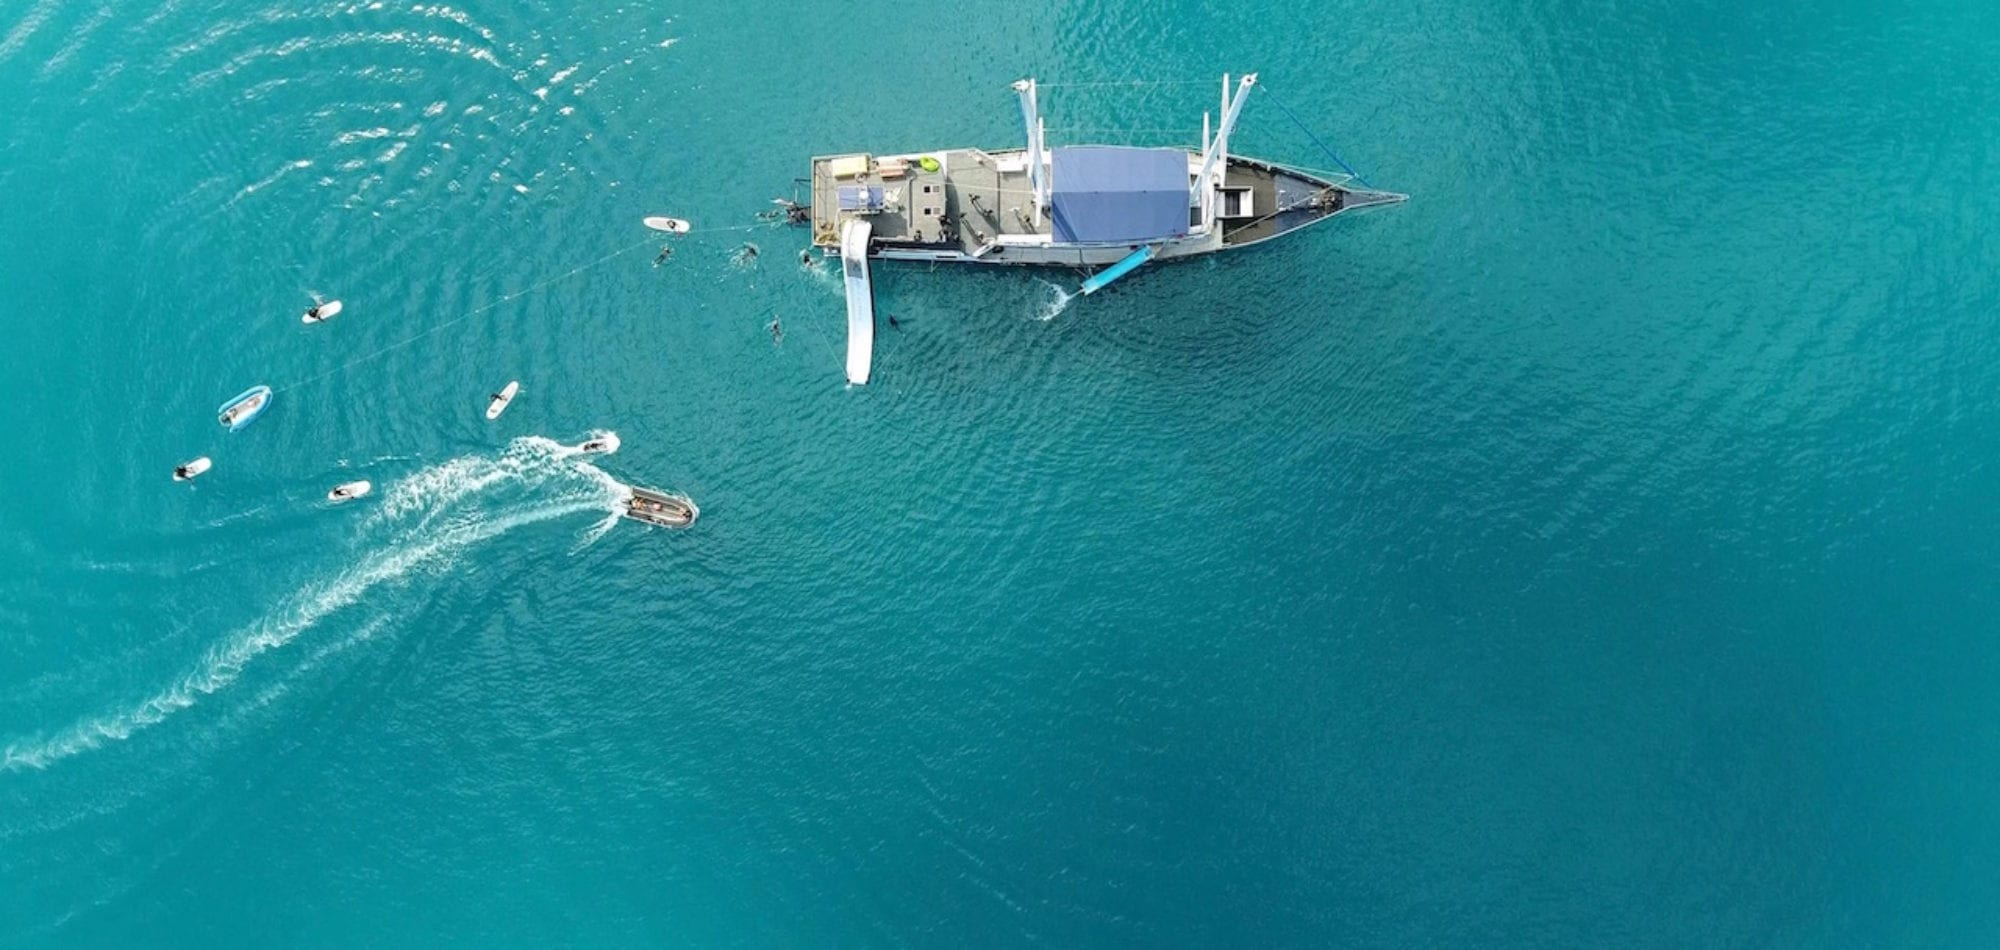 Whitsunday Islands - aerial photo of boat tour